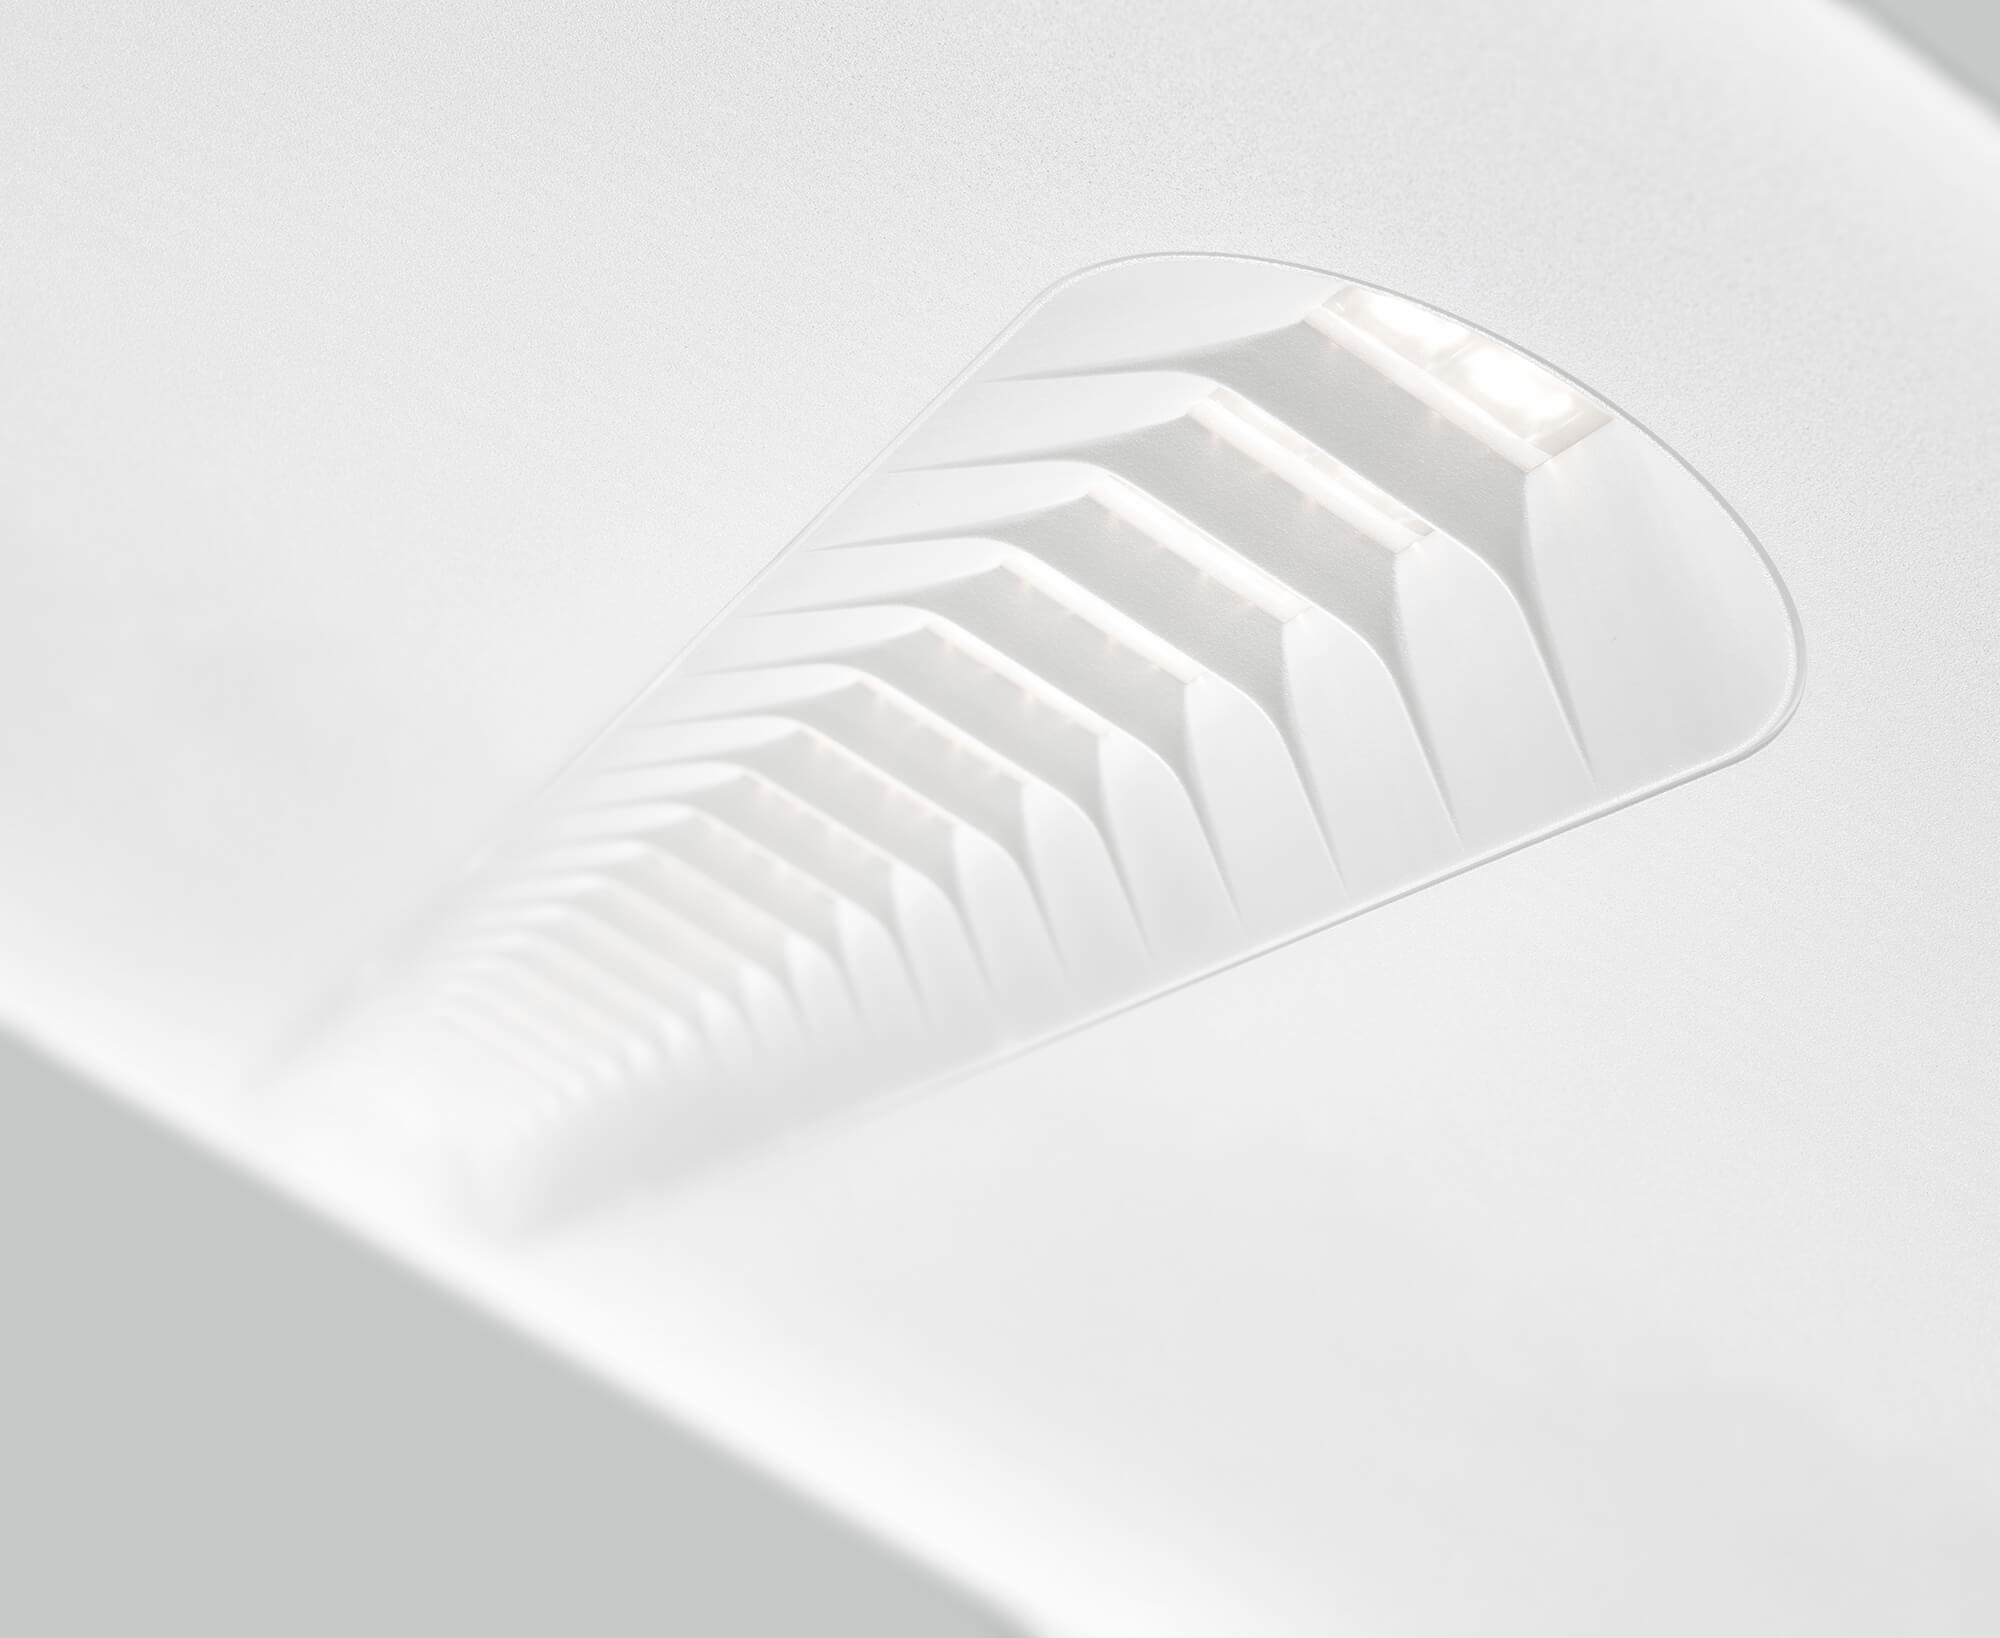 ETAP luminaires excel with their high efficiency, long service life and outstanding maintenance factor.